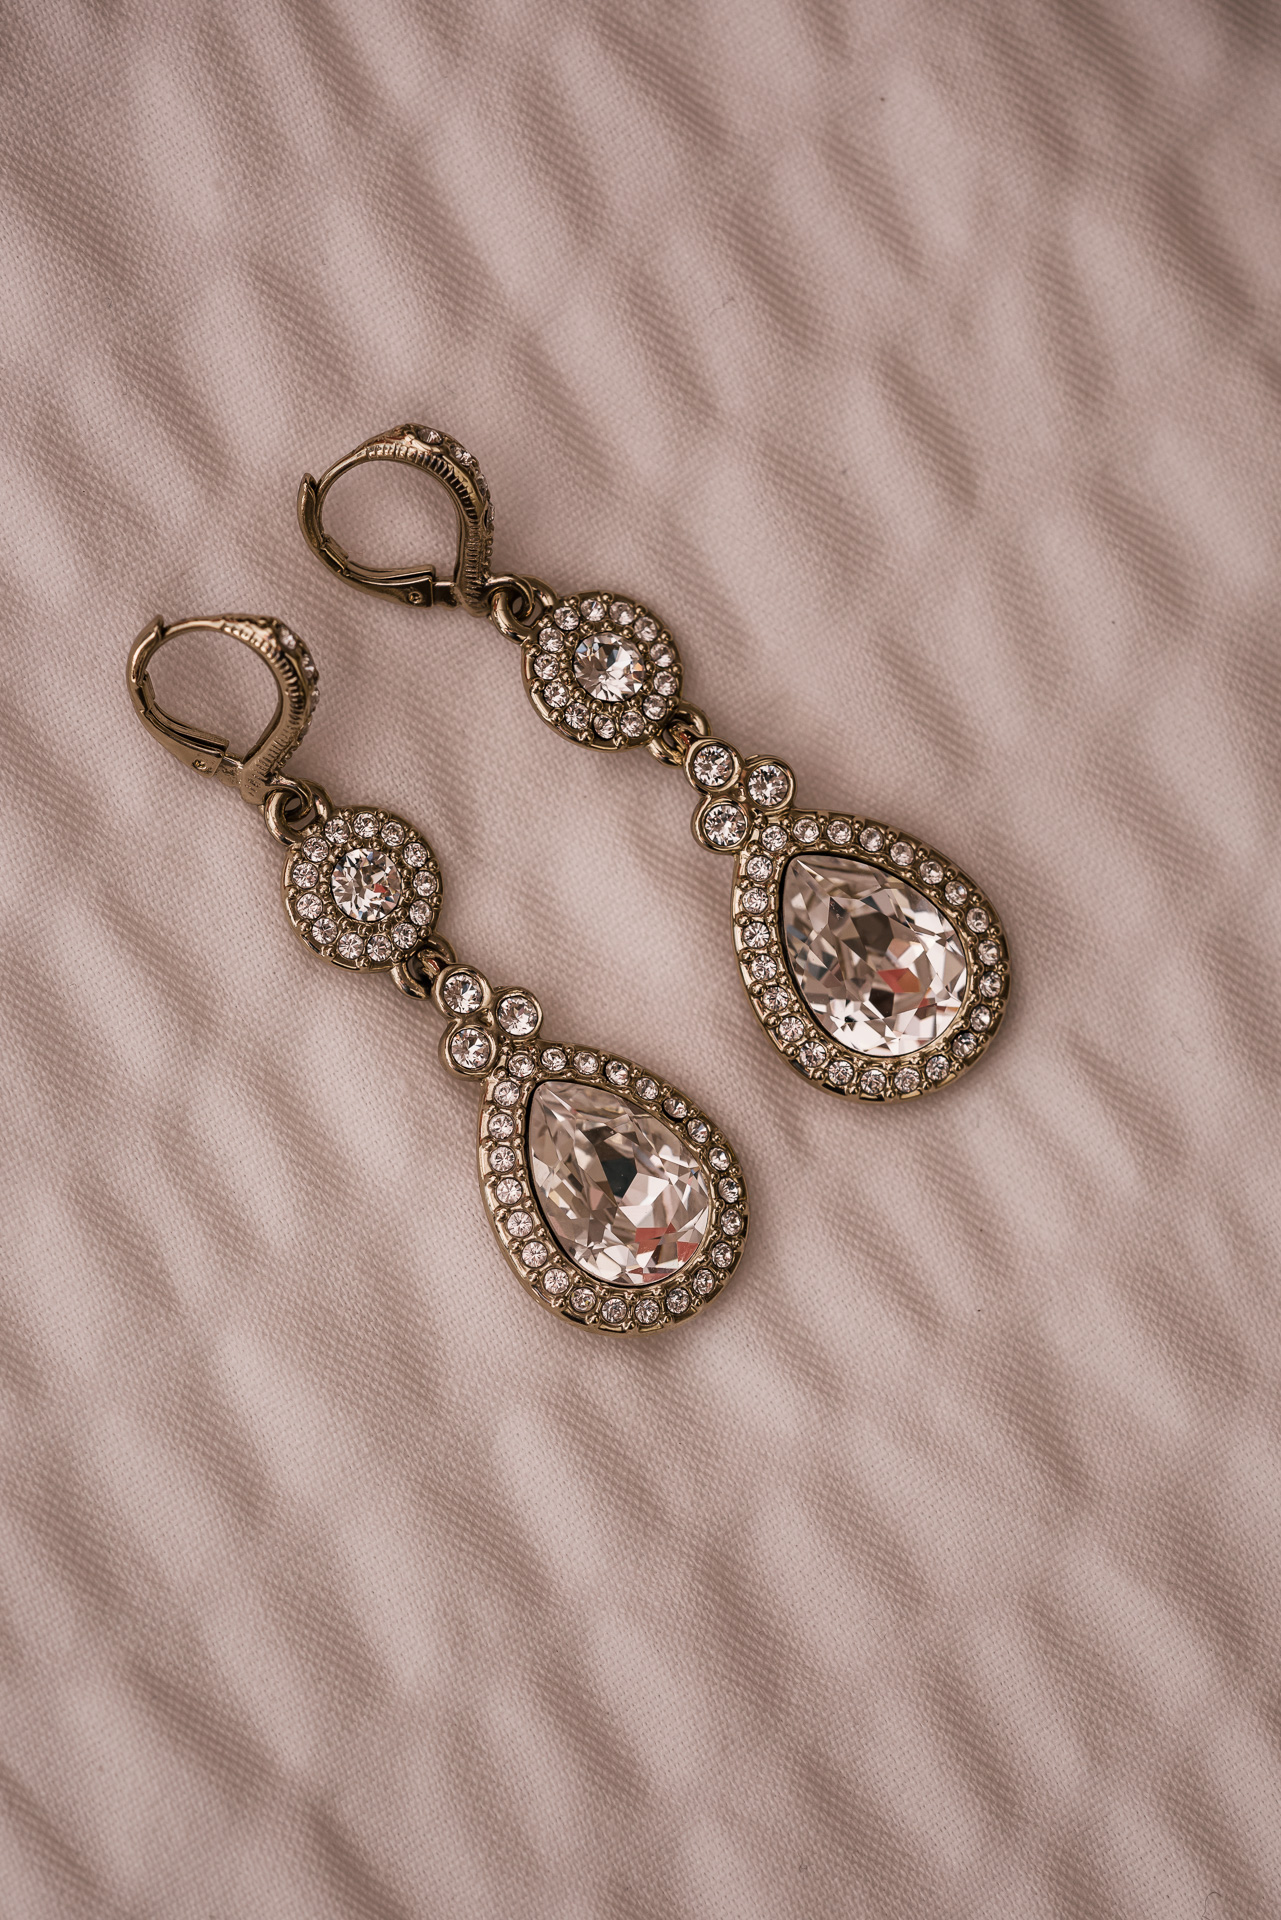 beautiful brides set of earings on a white background at the Twin Oaks Golf course in san marcos, San diegos premier wedding venue